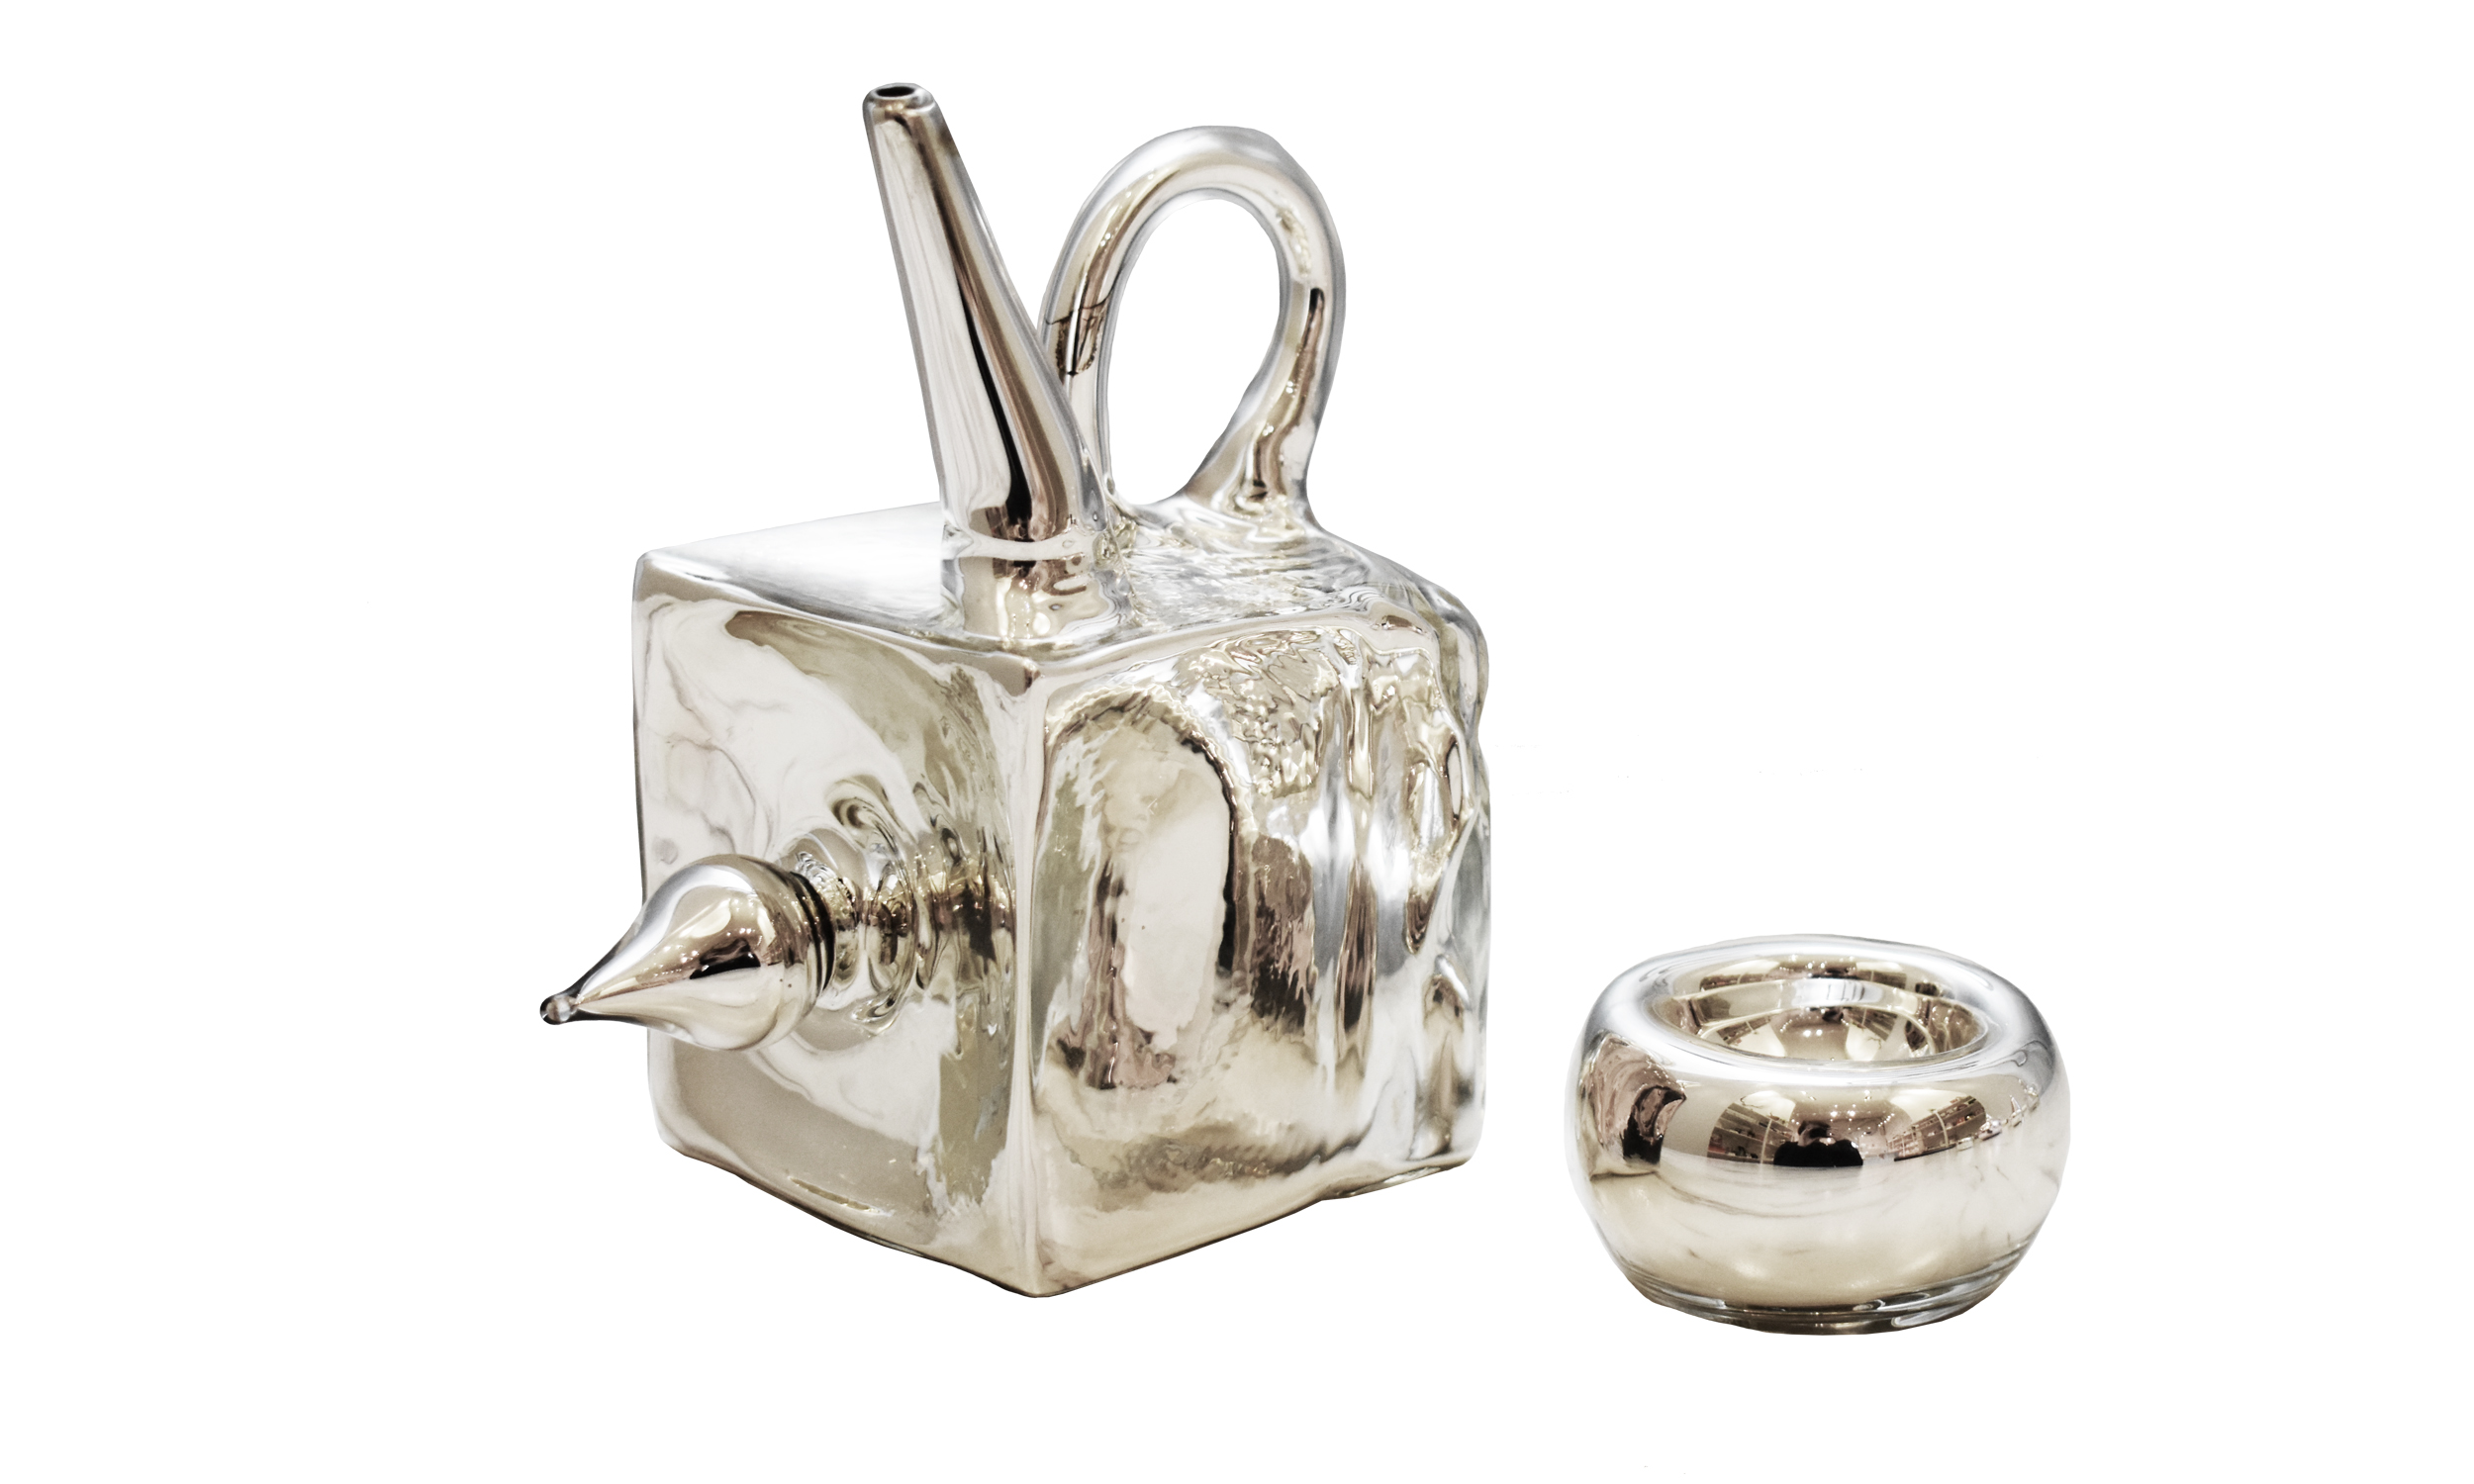 Mirrored Teapot + Cup I,  flameworked and mirrorized glass, variable dimensions, $450    Contact us for purchase